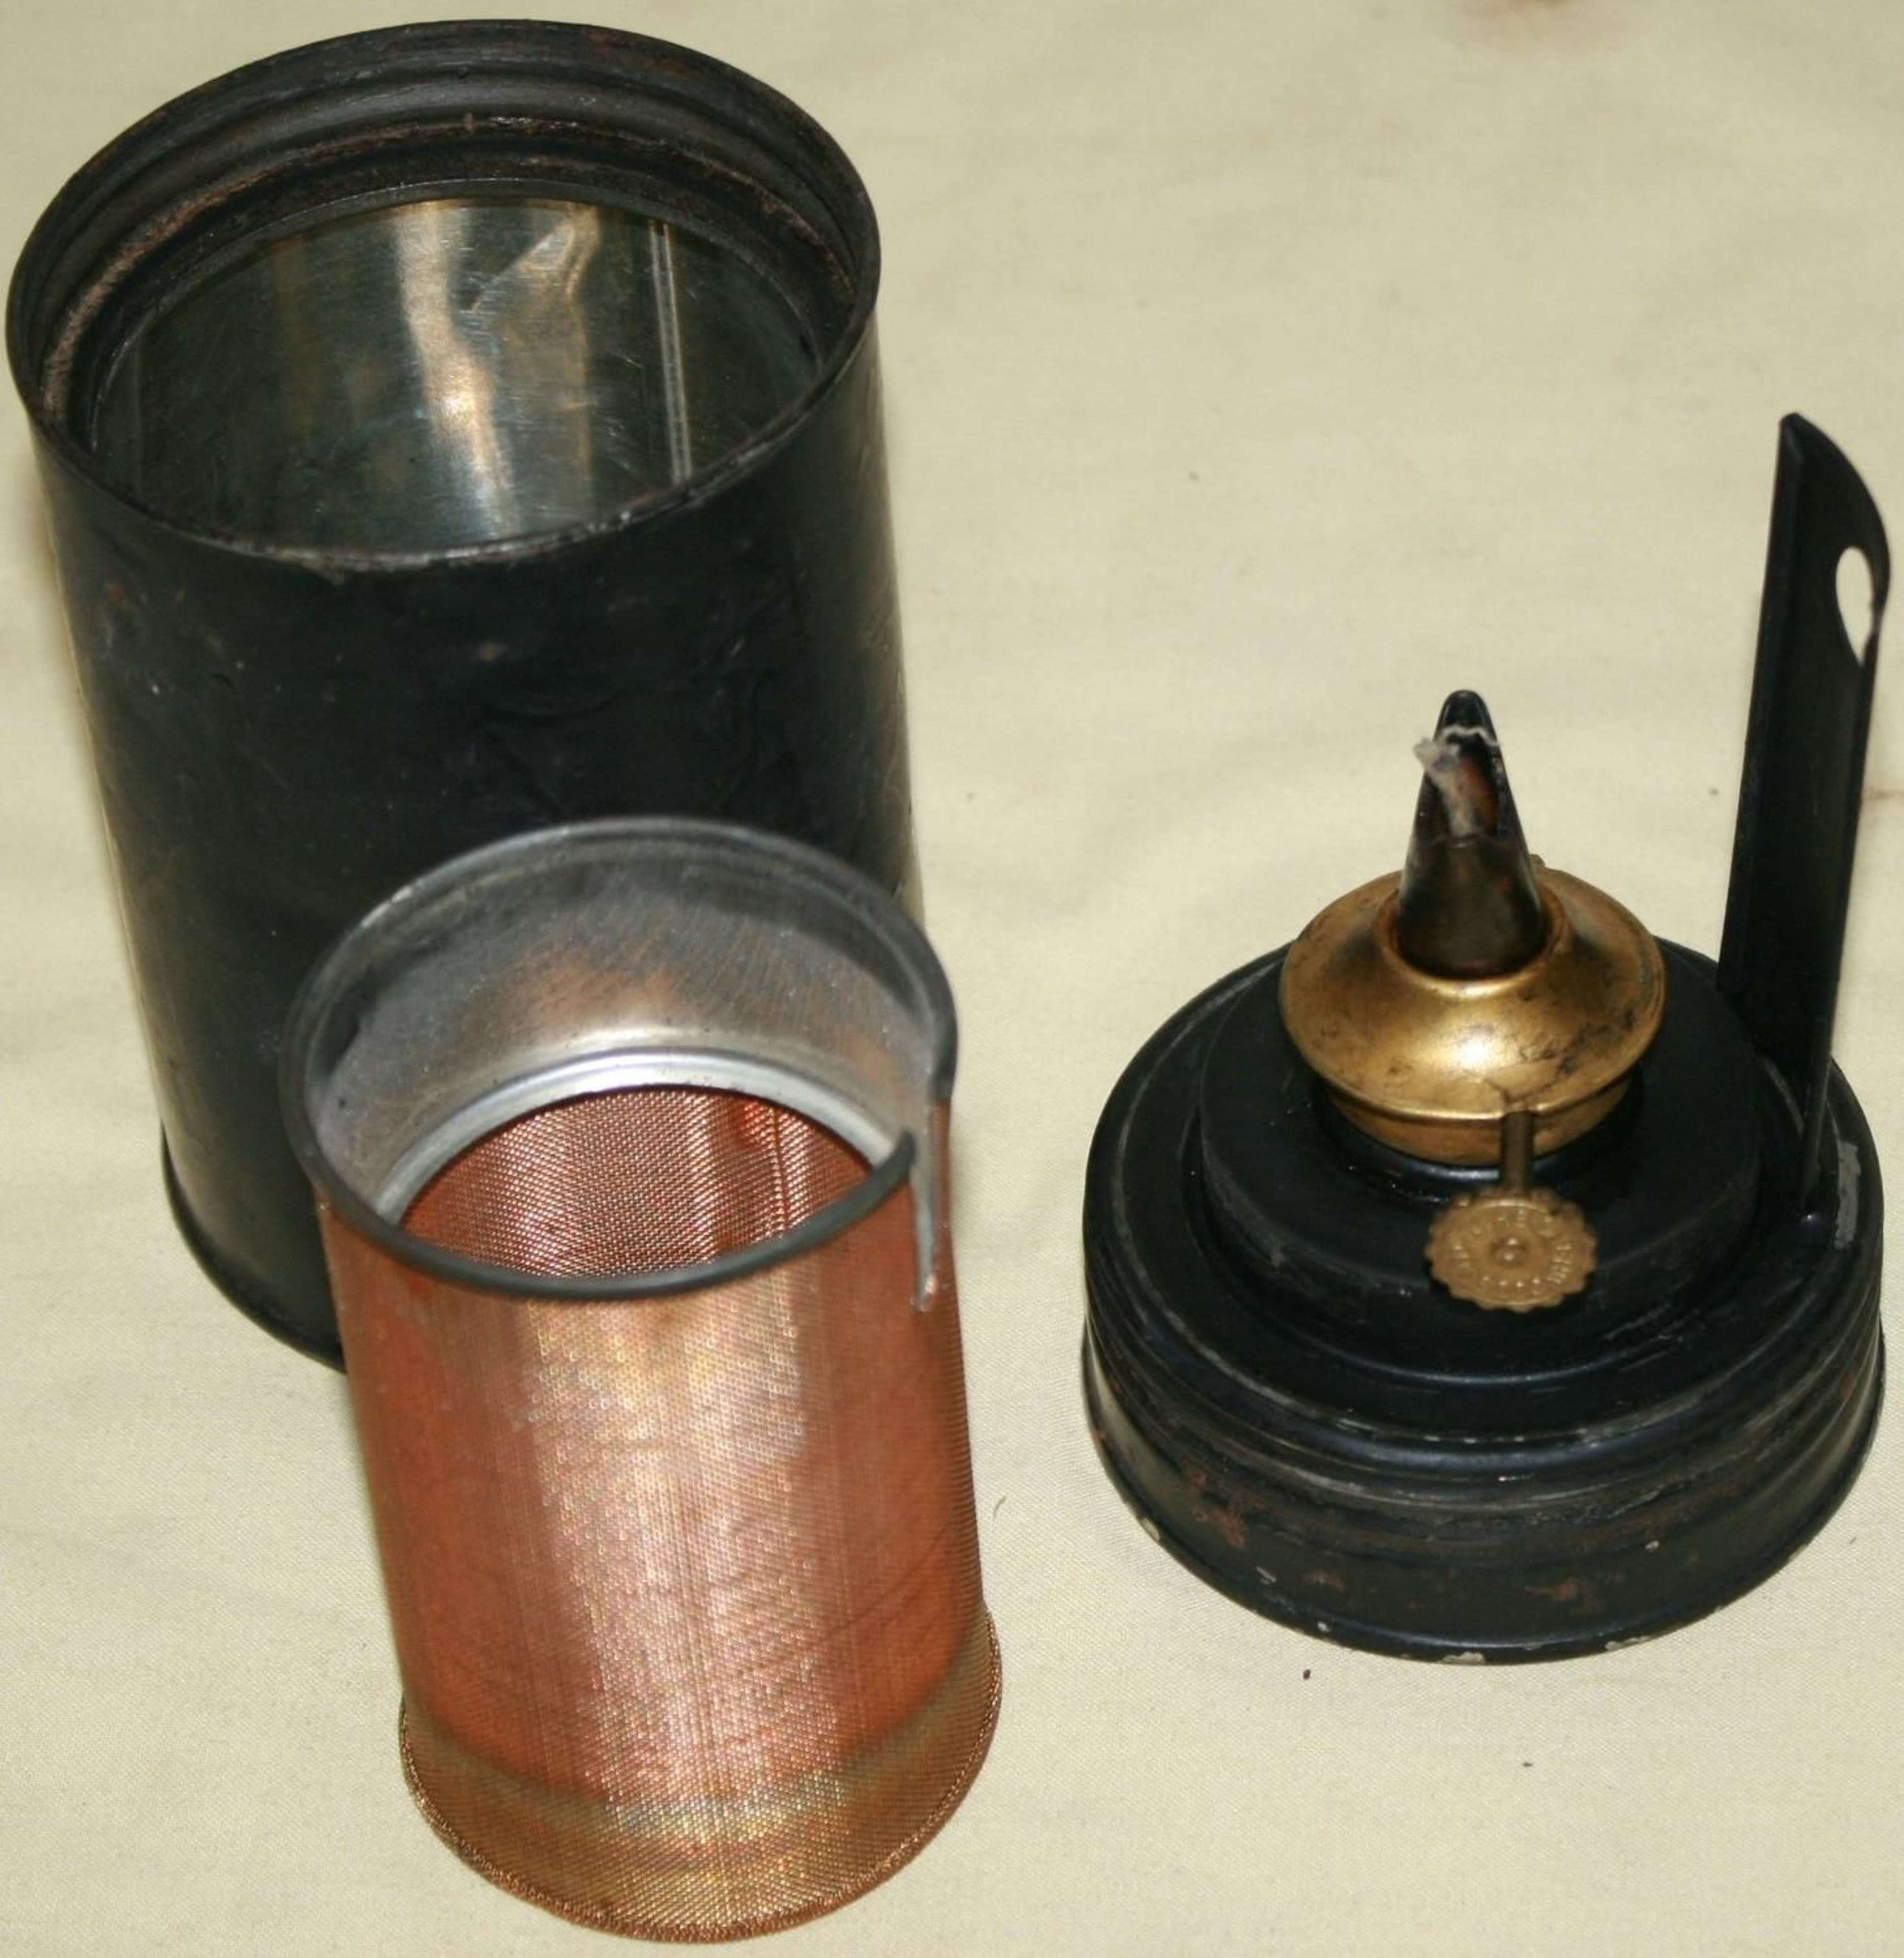 A 1945 DATED TENT HEATER